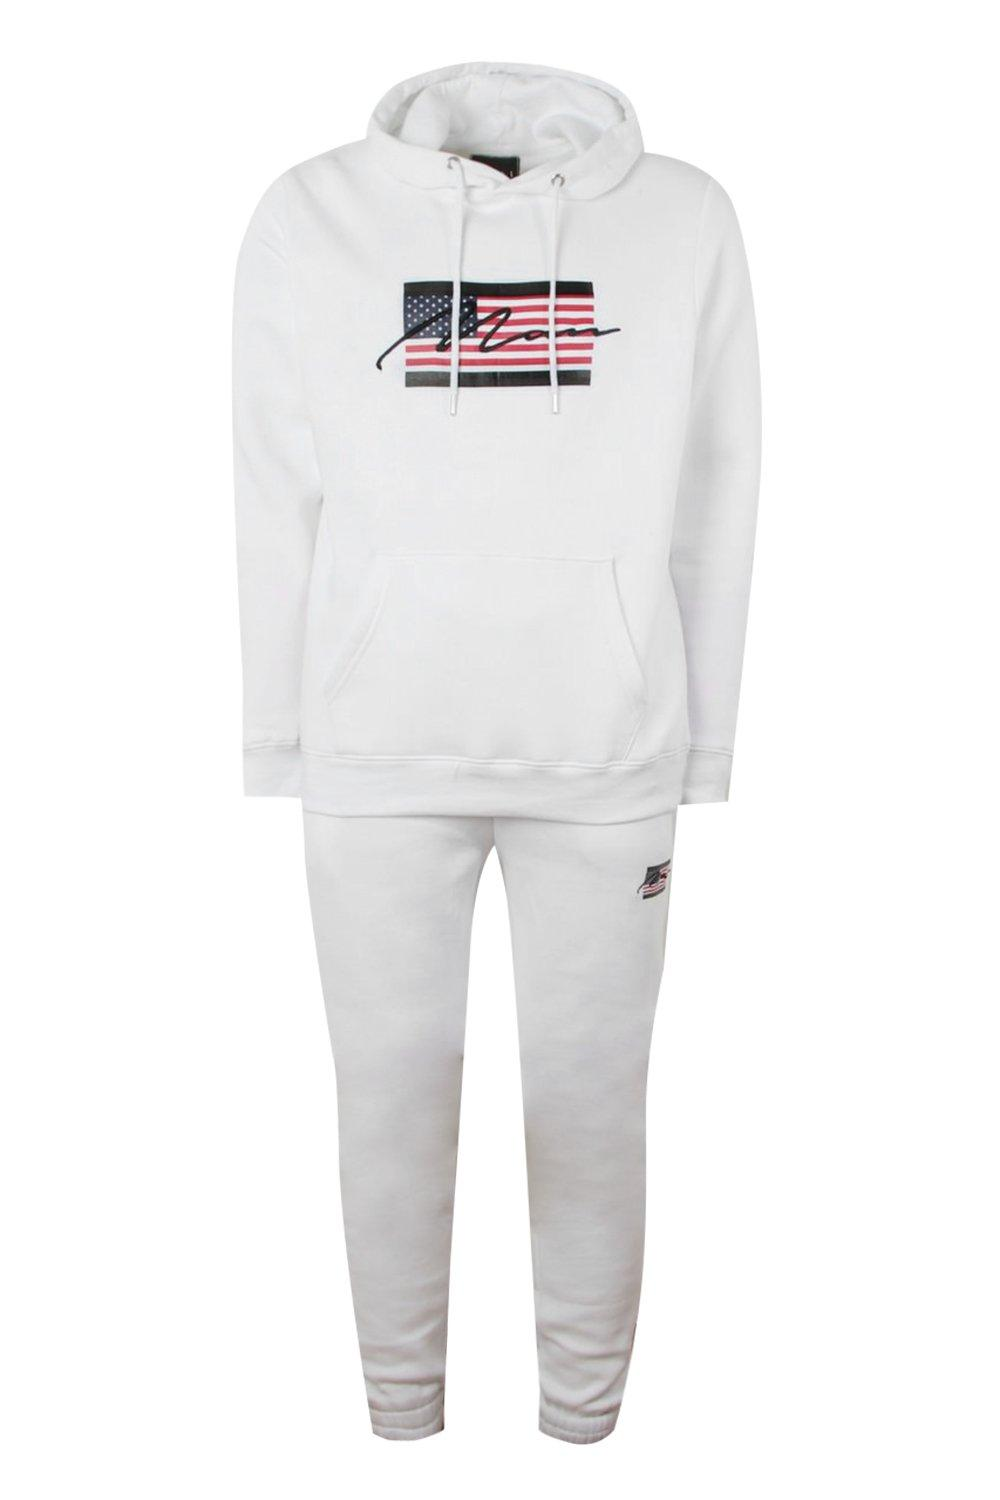 boohooMAN white American Flag Tracksuit With MAN Embroidery